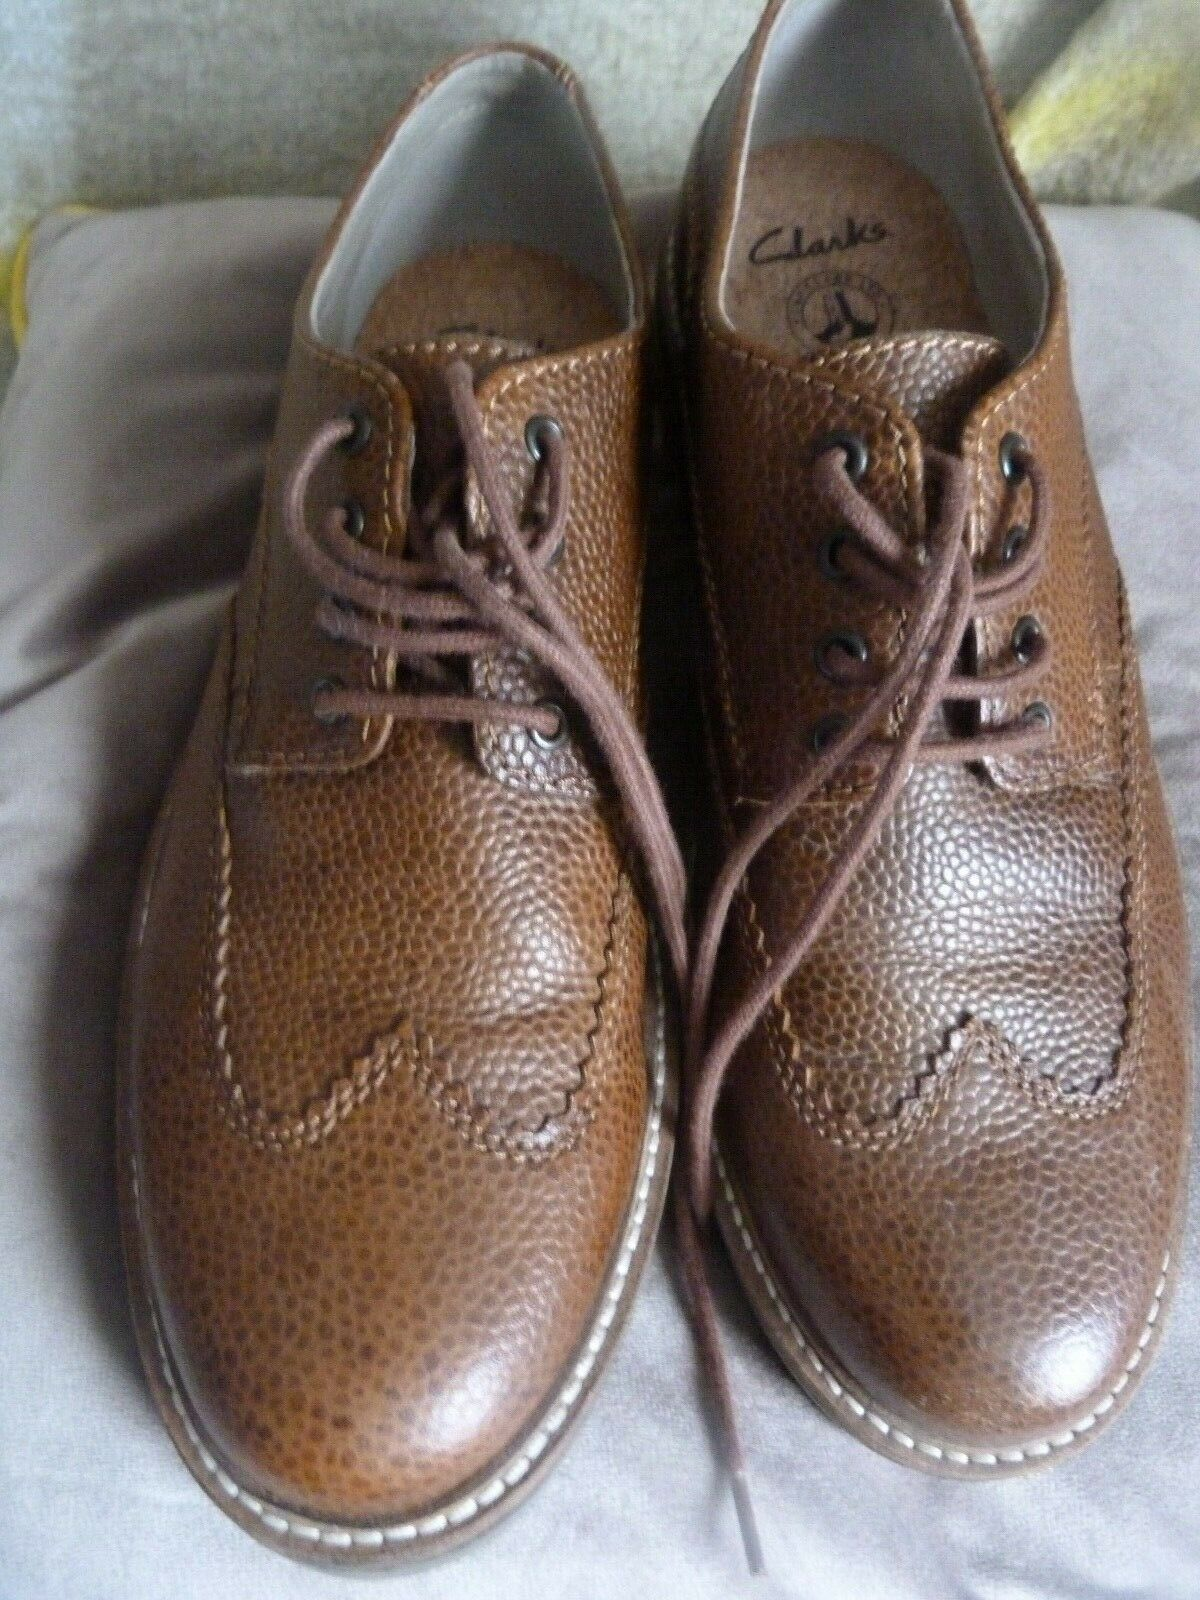 CLARKS MENS CASUAL LEATHER UPPER BROGUES MID BROWN SHOES SIZE 8 1/2,A1 Excellent